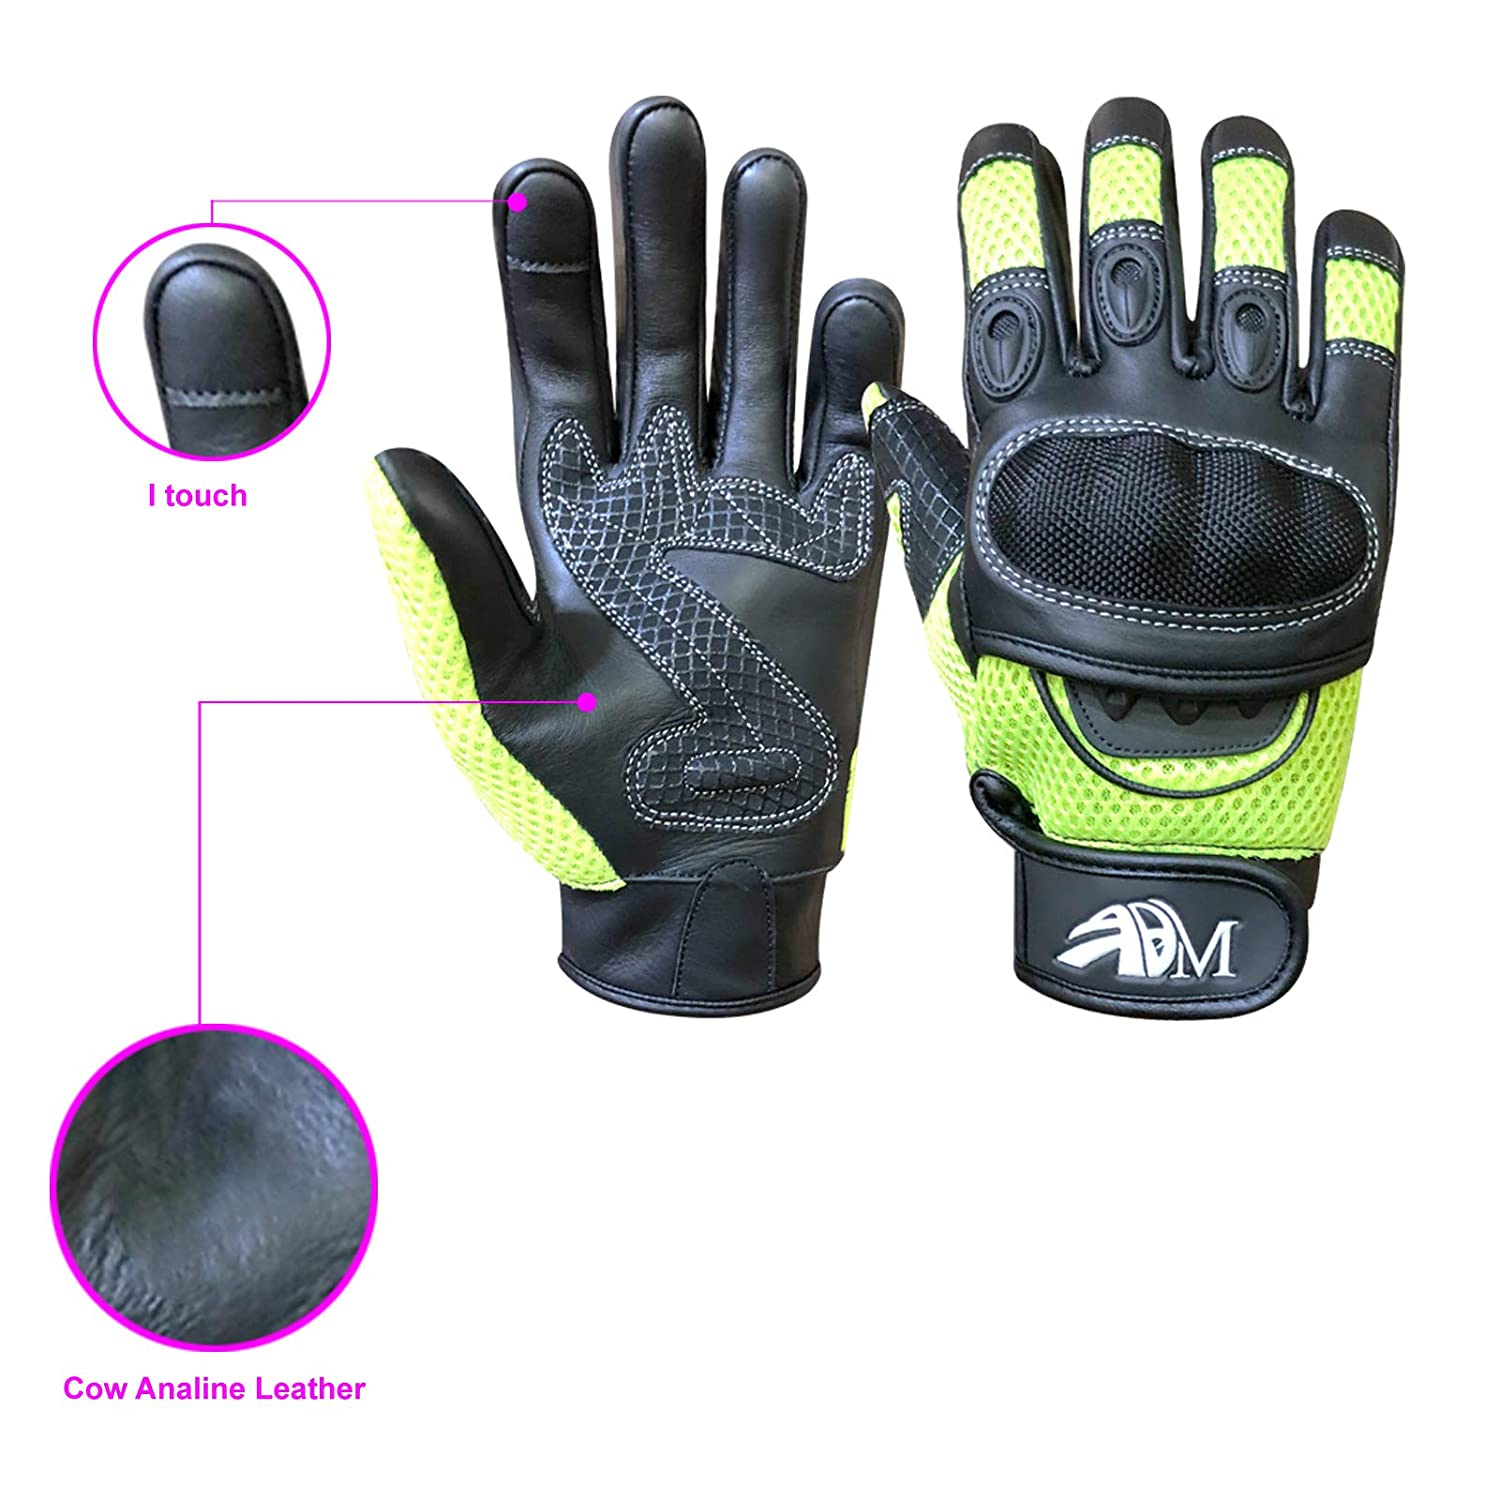 Ladies Cow Hide Leather Full Finger Summer Motorbike Mountain Bike knuckle Protection Racing Gloves 9001 LDY 9001 Purple LDY, XS